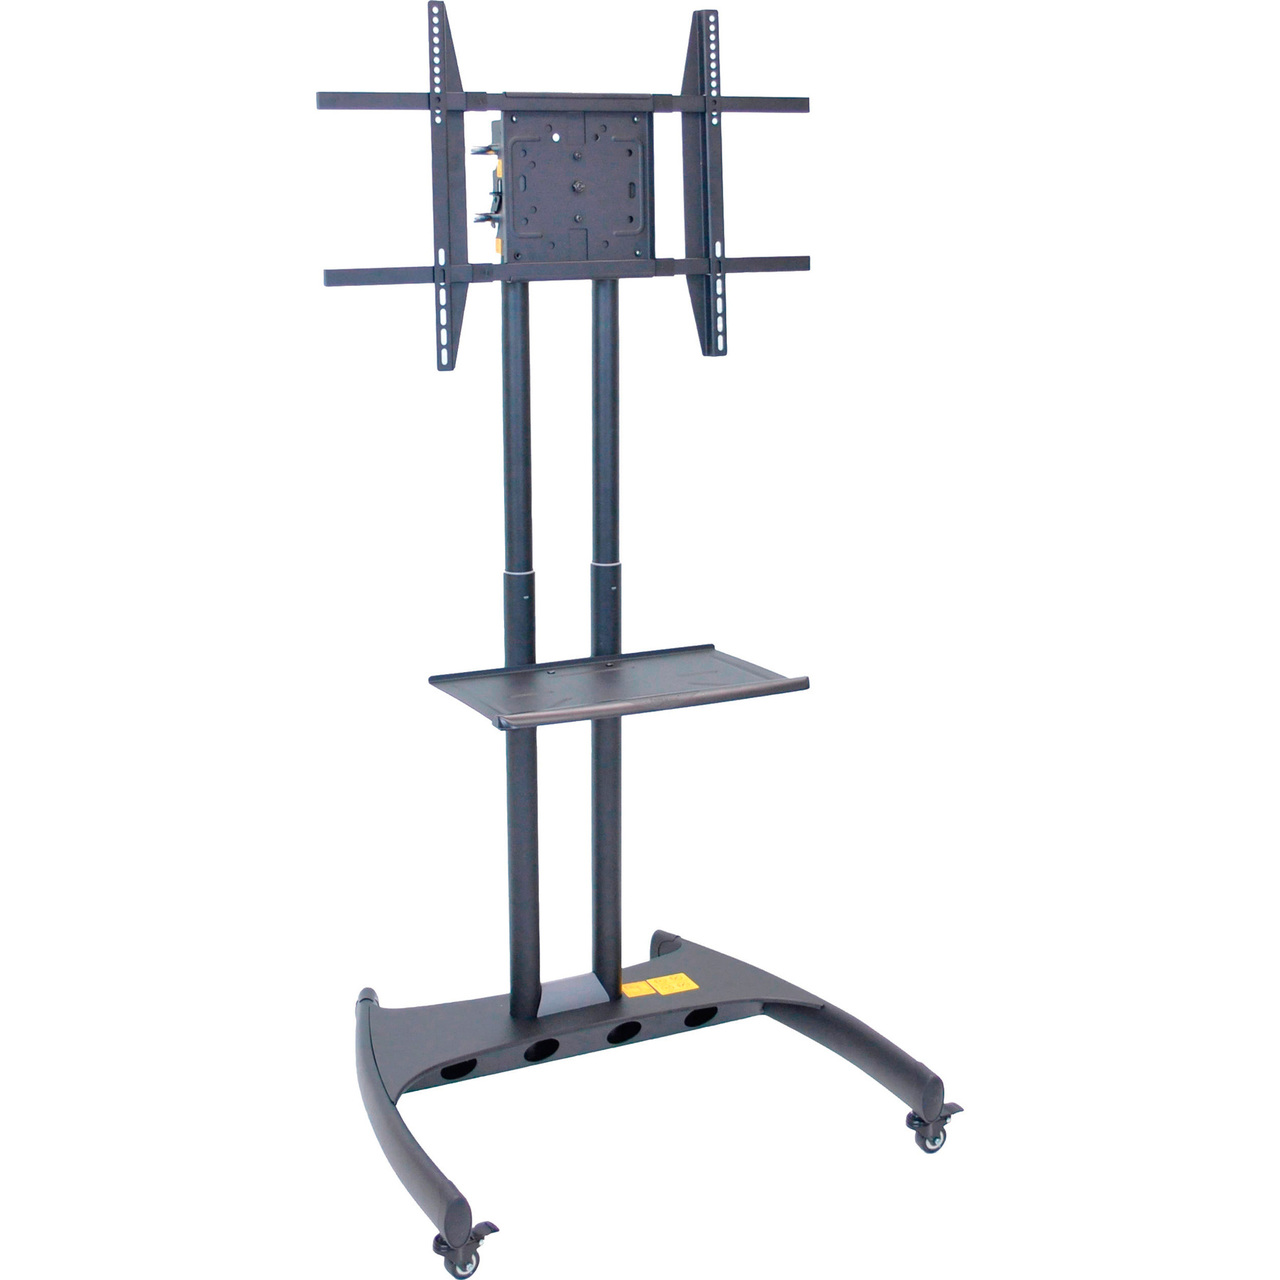 Luxor FP3500 Adjustable Height T.V. Stand LUX-FP3500